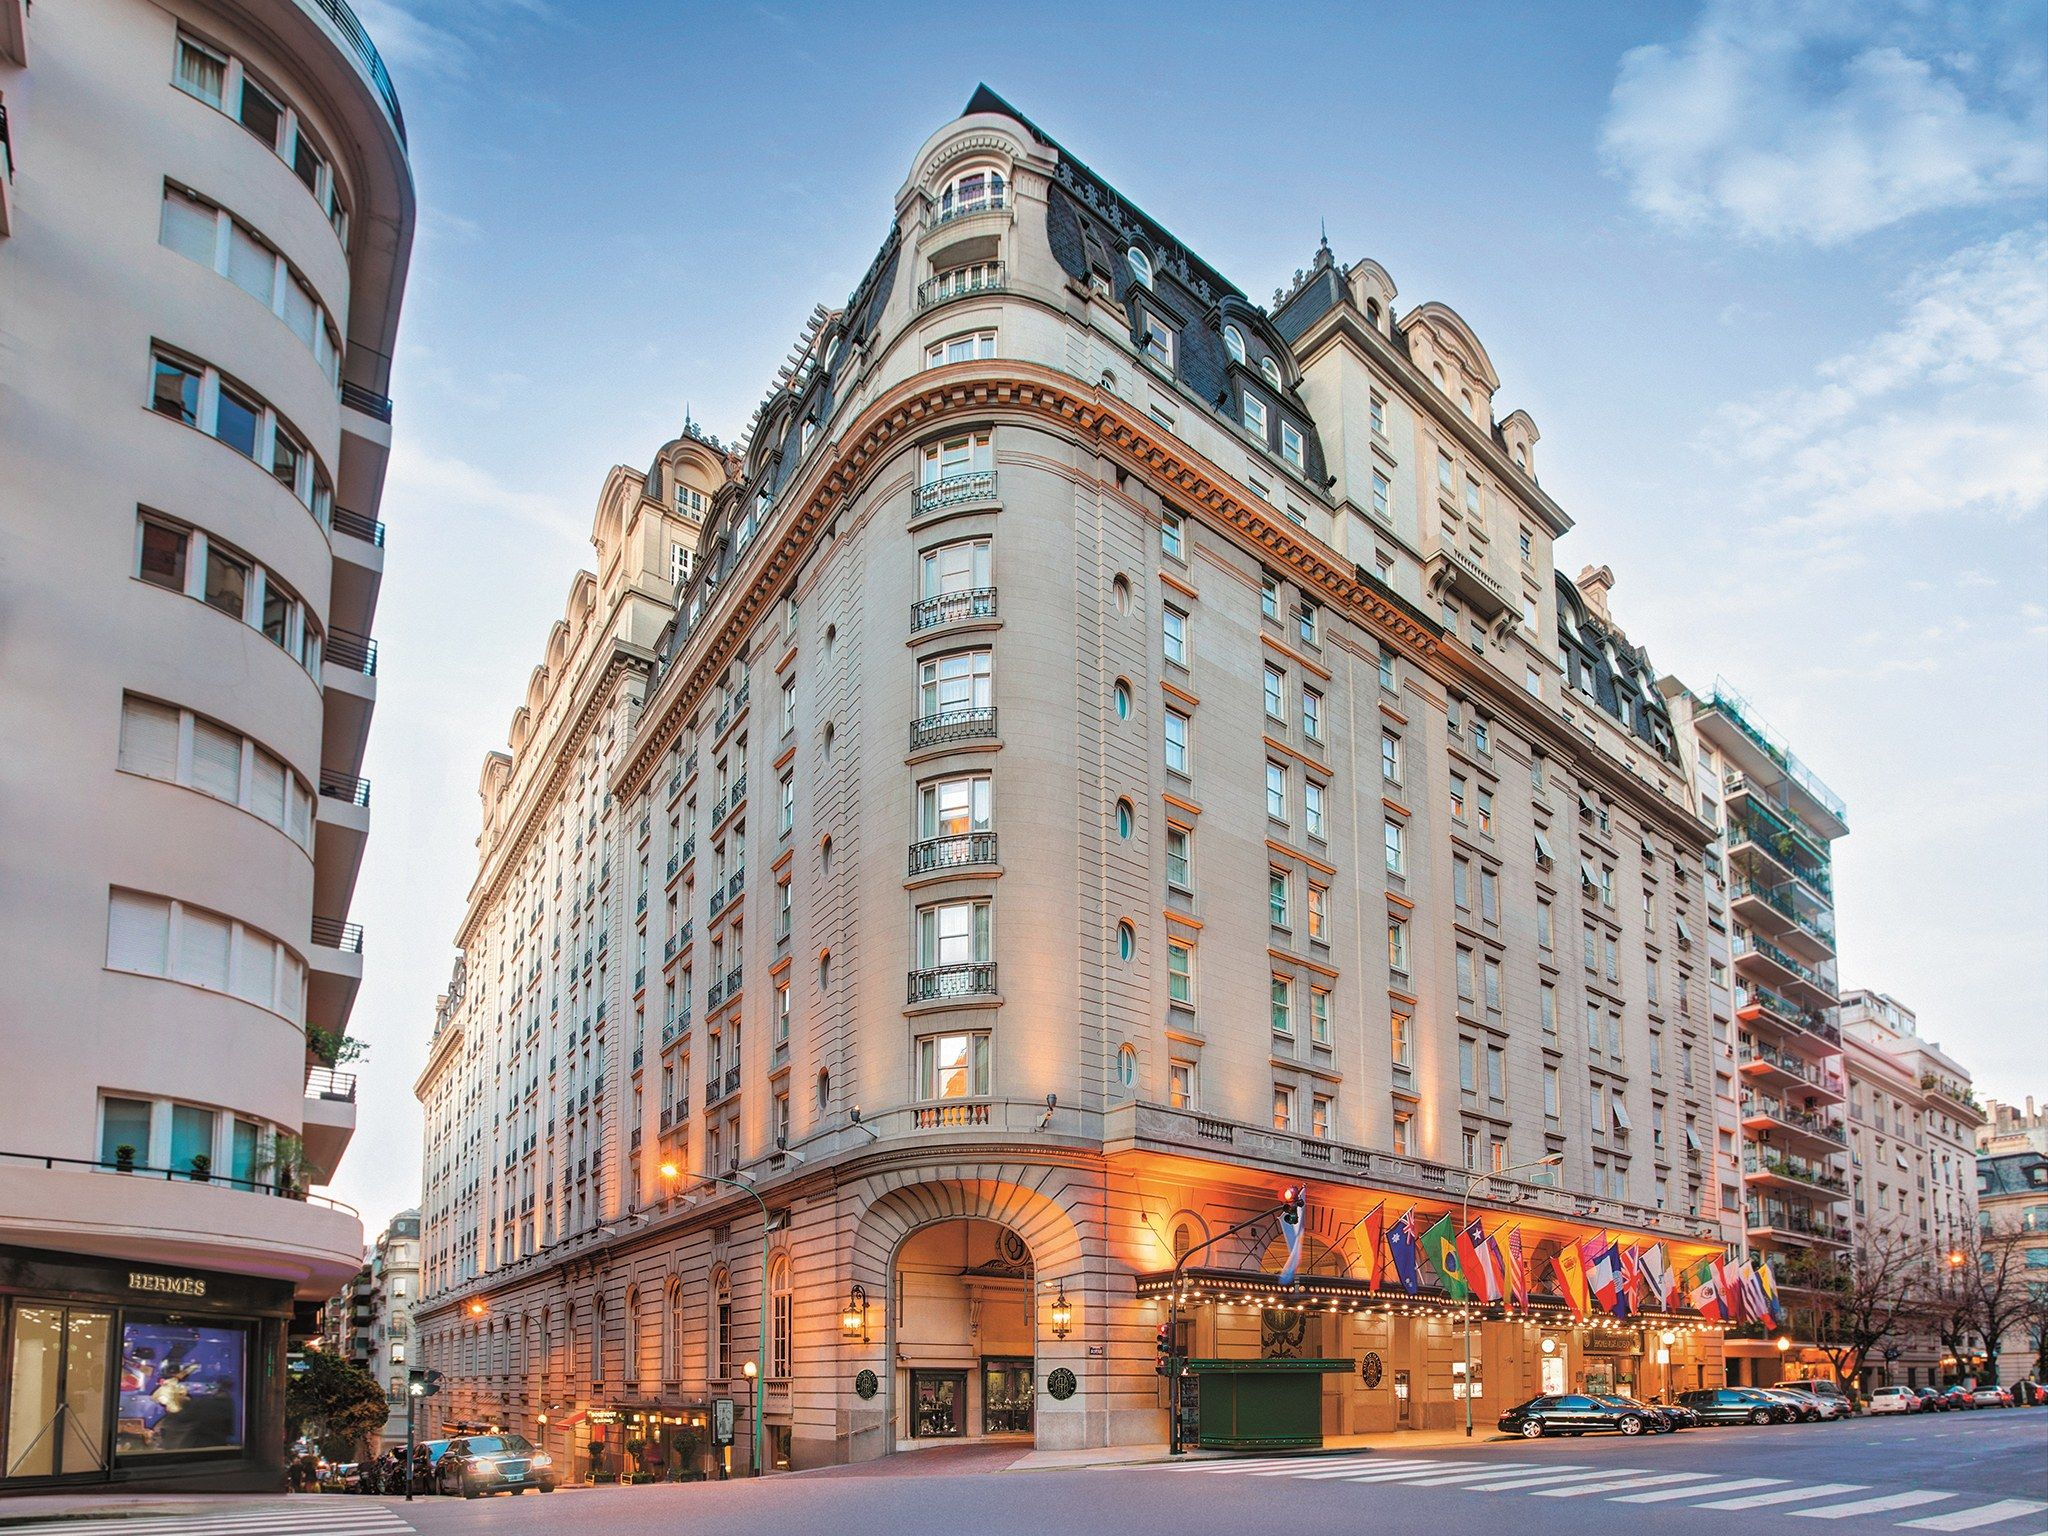 Find Alvear Palace Hotel Buenos Aires Argentina Information Photos Prices Expert Advice Traveler Reviews Palace Hotel Buenos Aires Buenos Aires Argentina